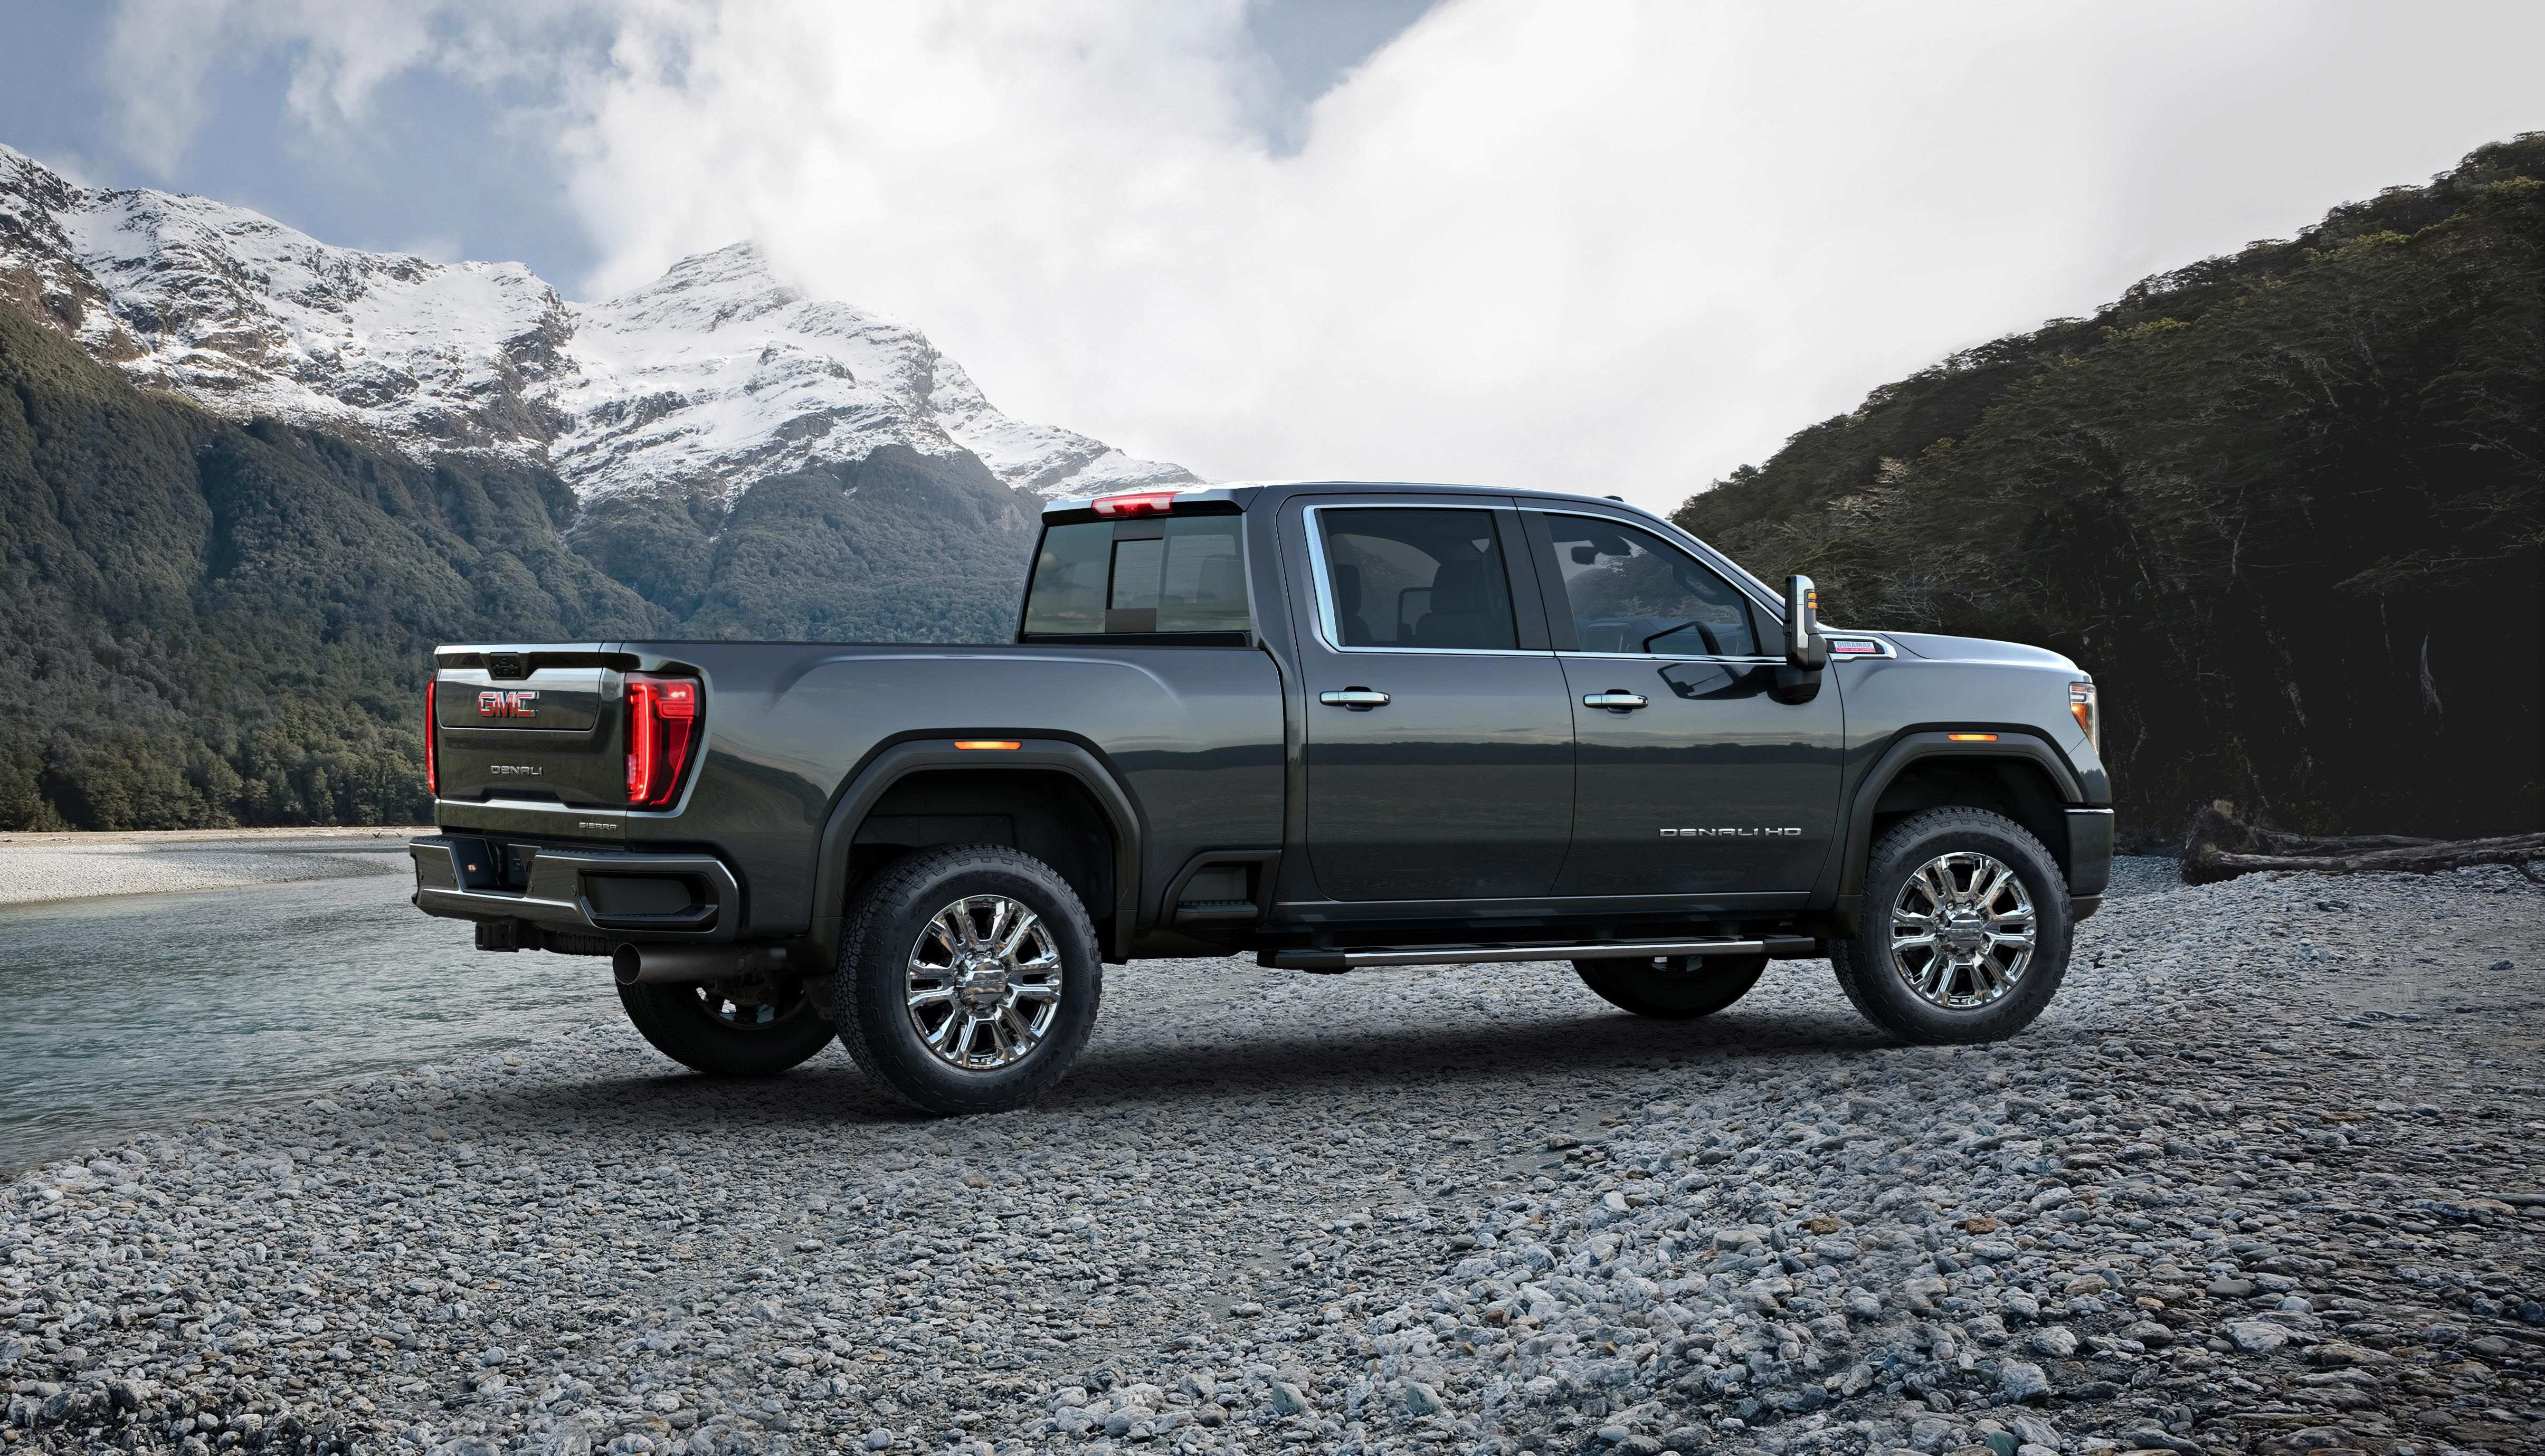 62 The Best 2020 Gmc Vs Ford Price And Review